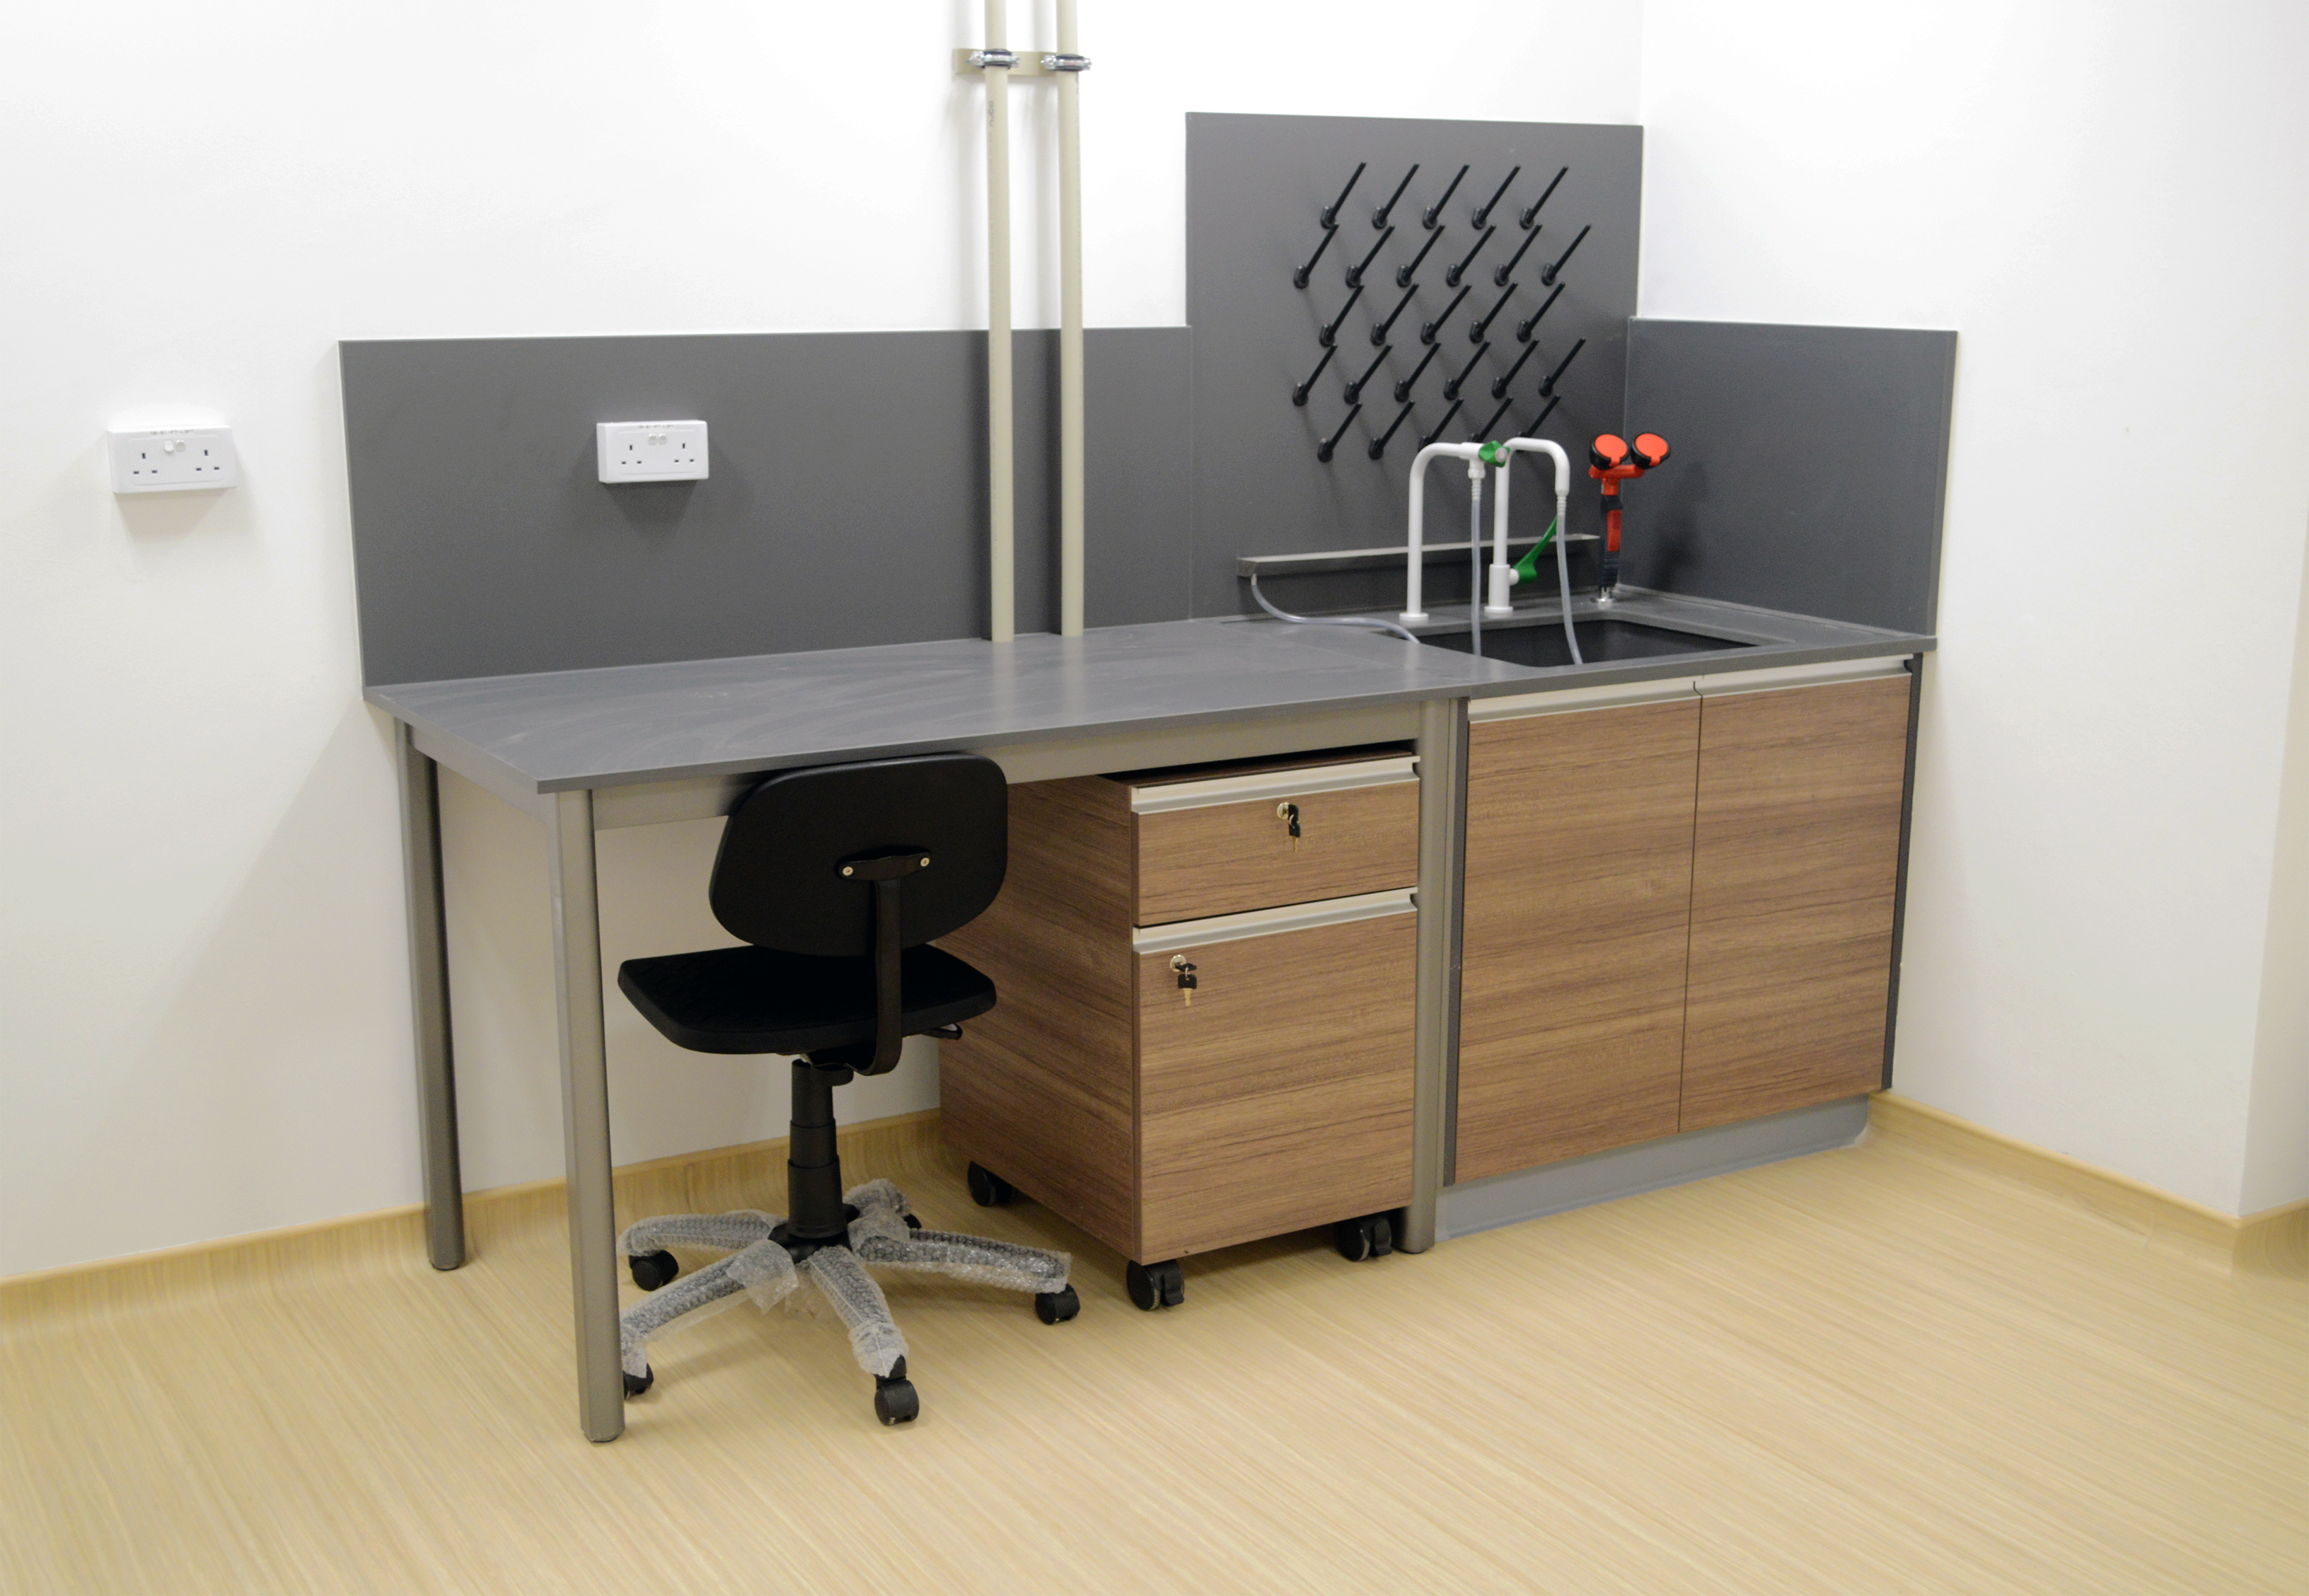 Graphite Expoxy lab table & sink